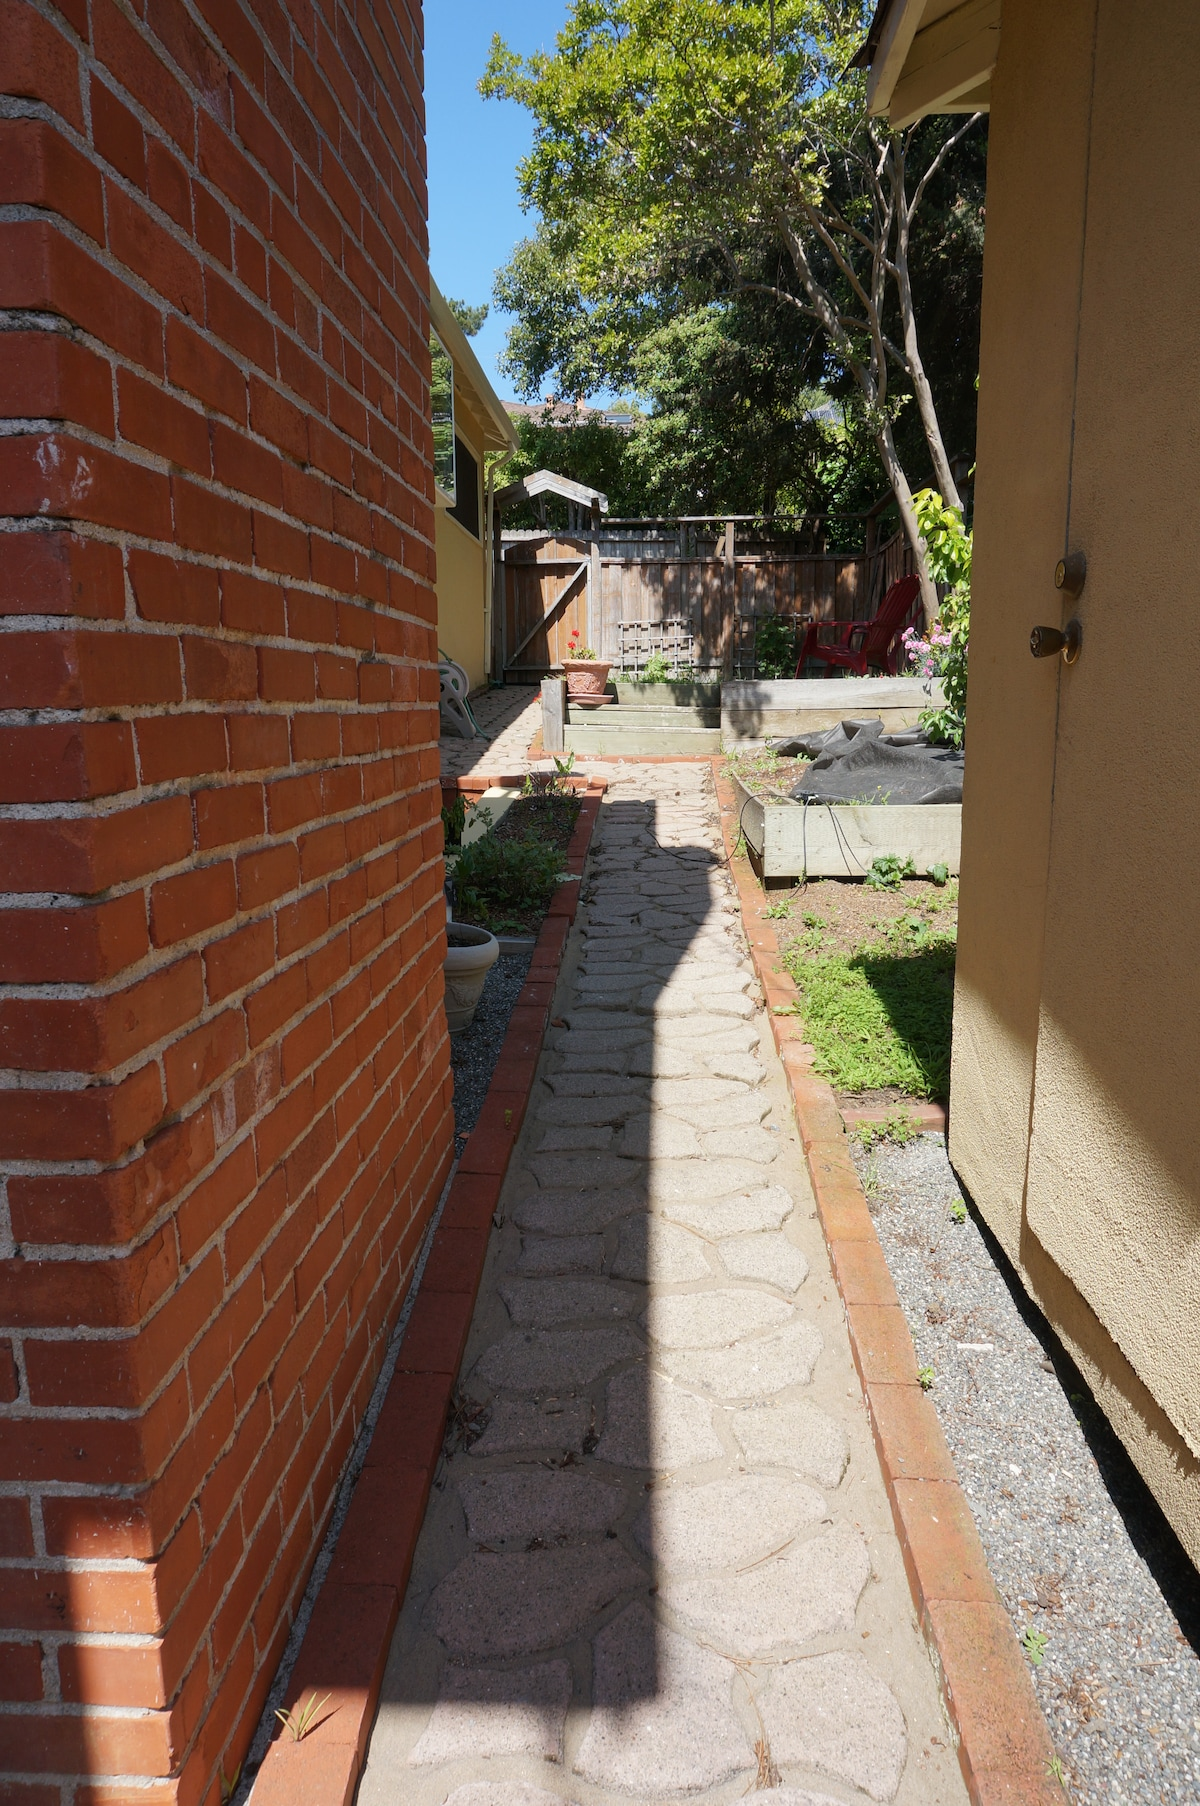 Stone path in private side yard connects from patio to lawn.